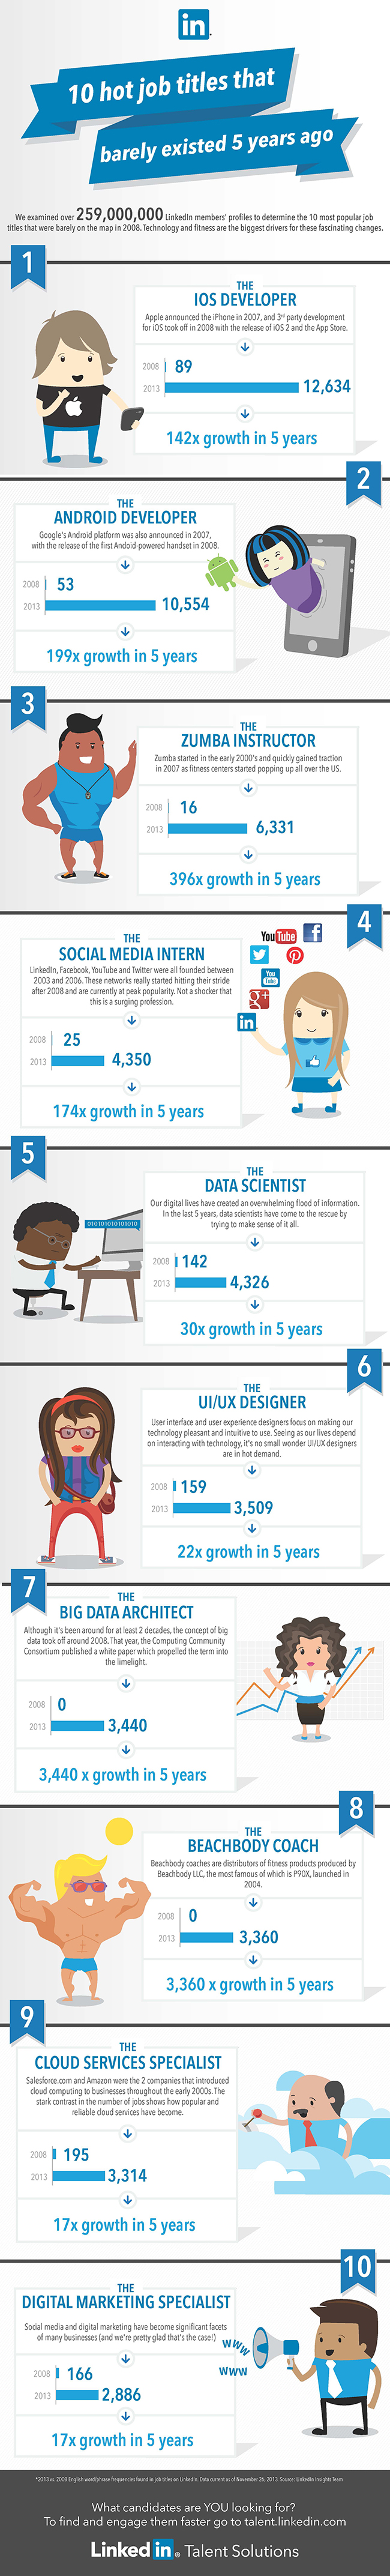 Jobs that didn't exits 5 years ago infographic